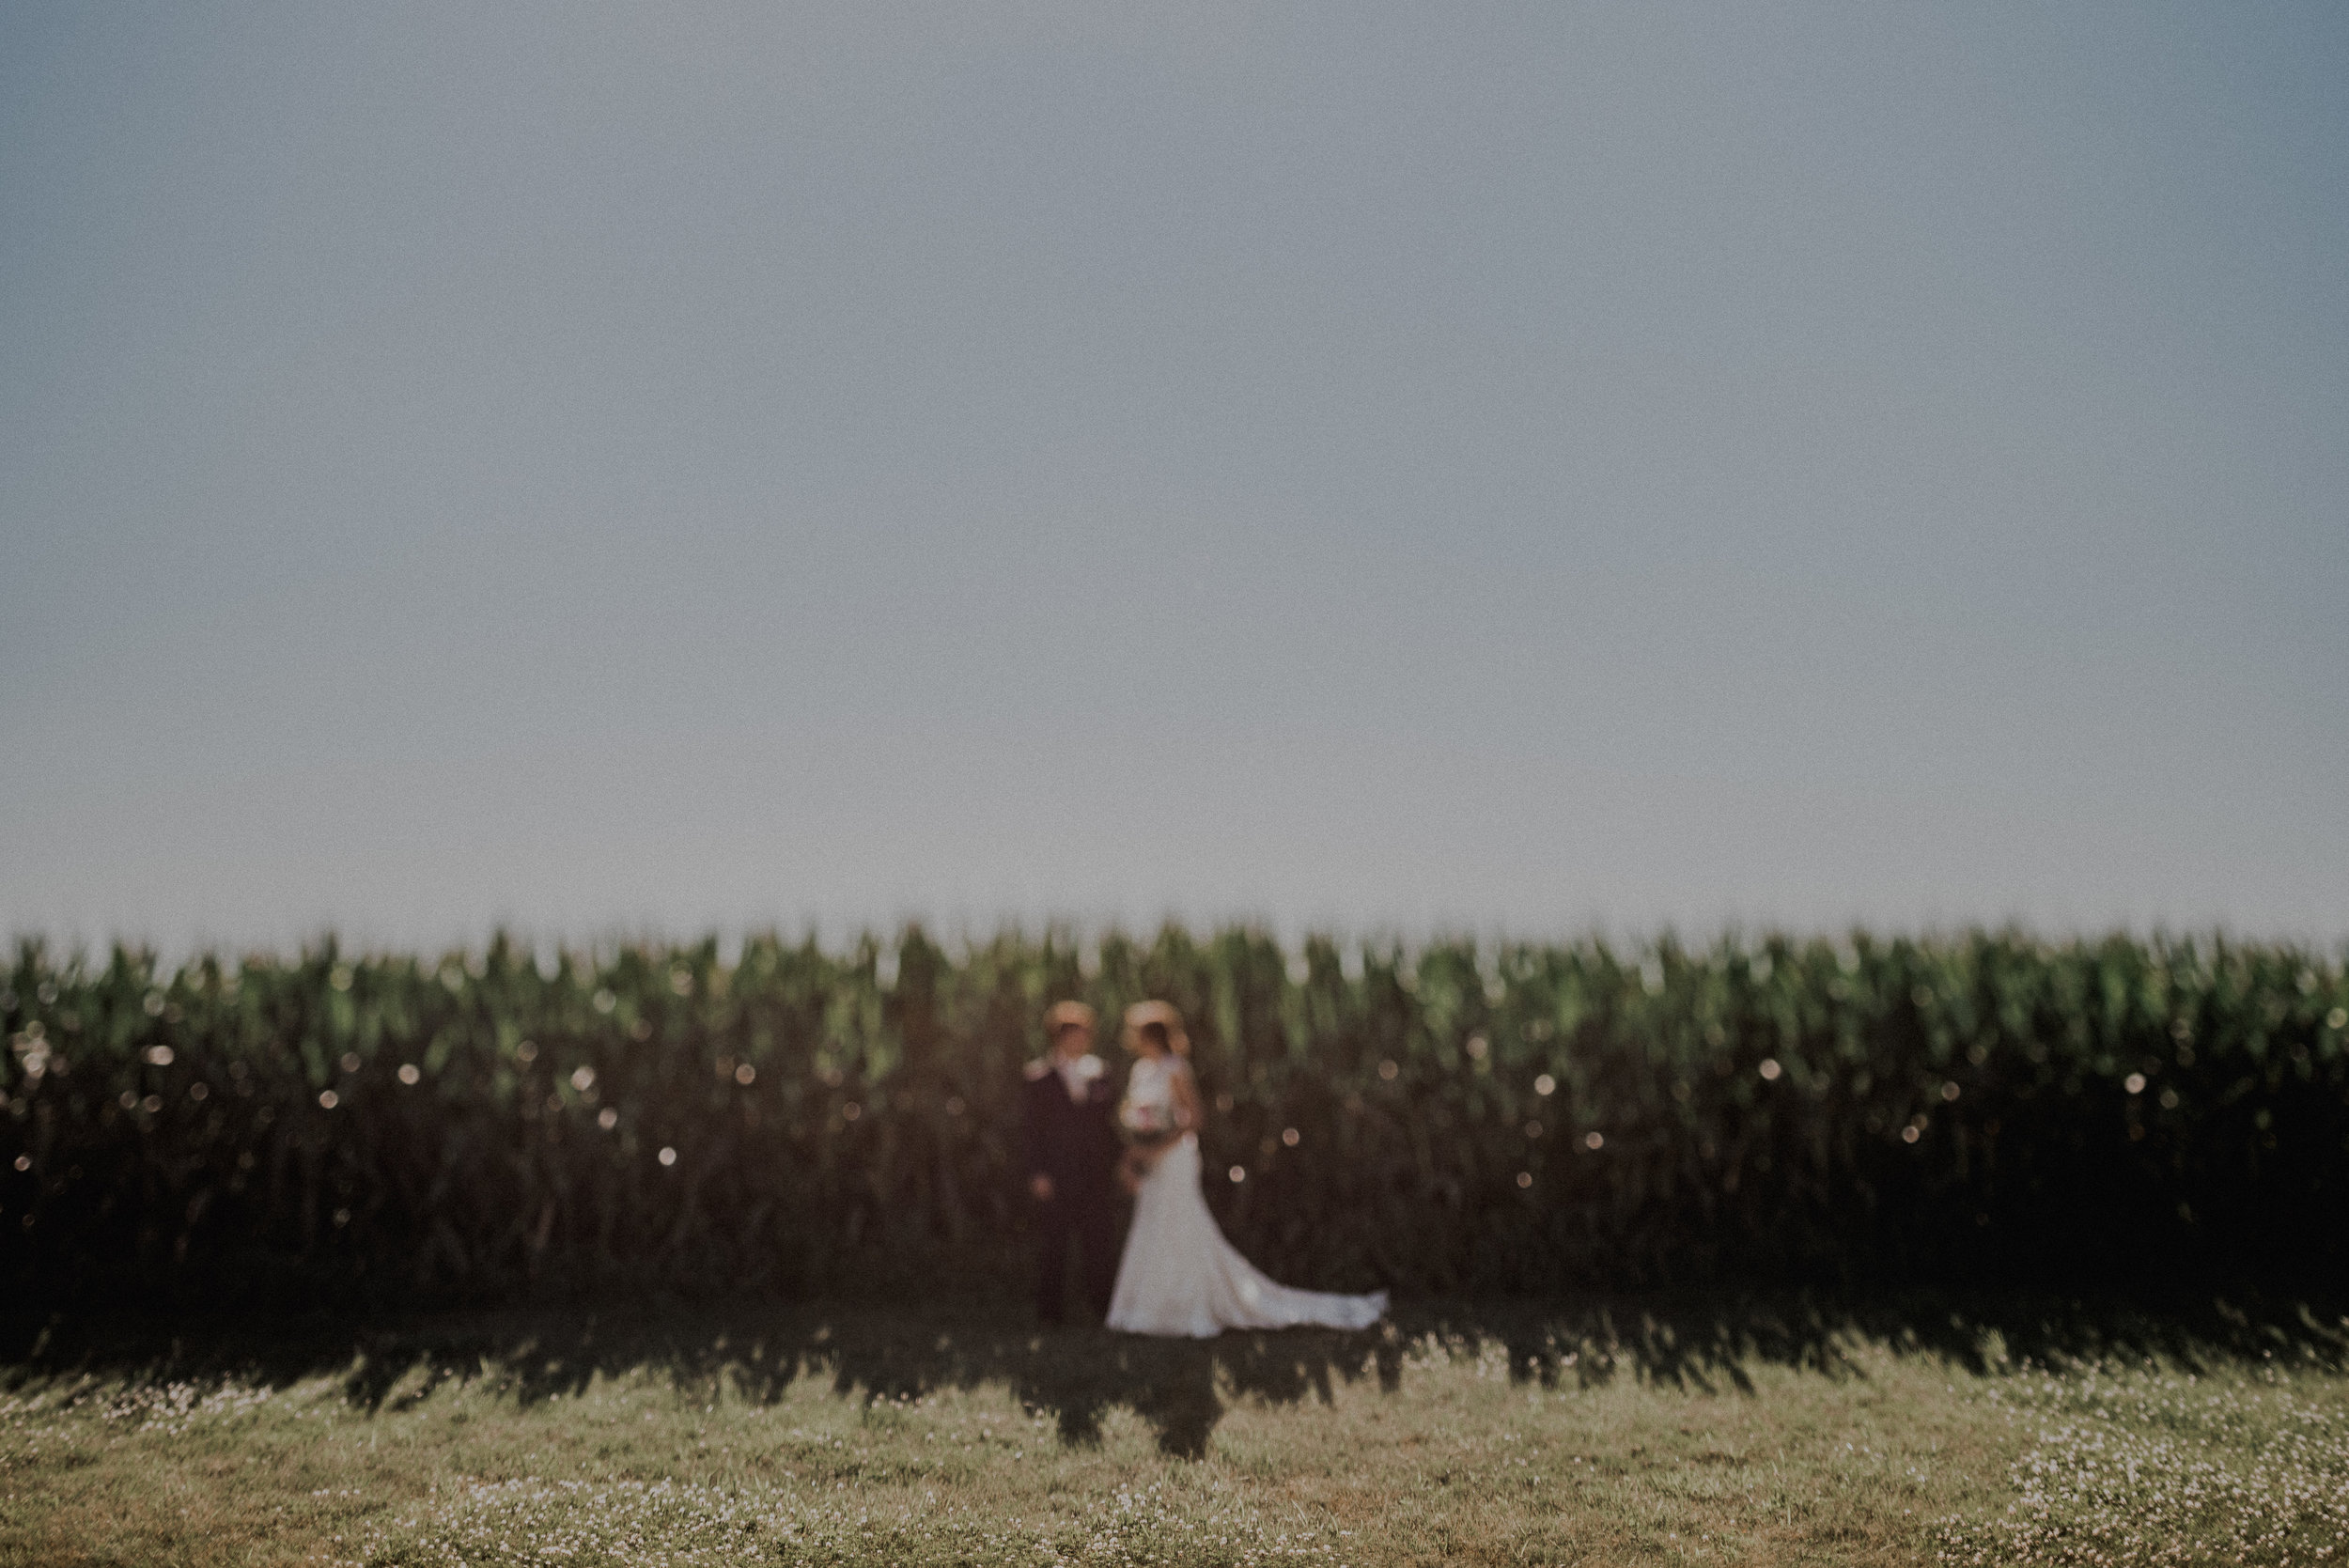 Melissa Cervantes Photography Iowa + Midwest Destination Wedding Photography - Grant + Monica-292.jpg